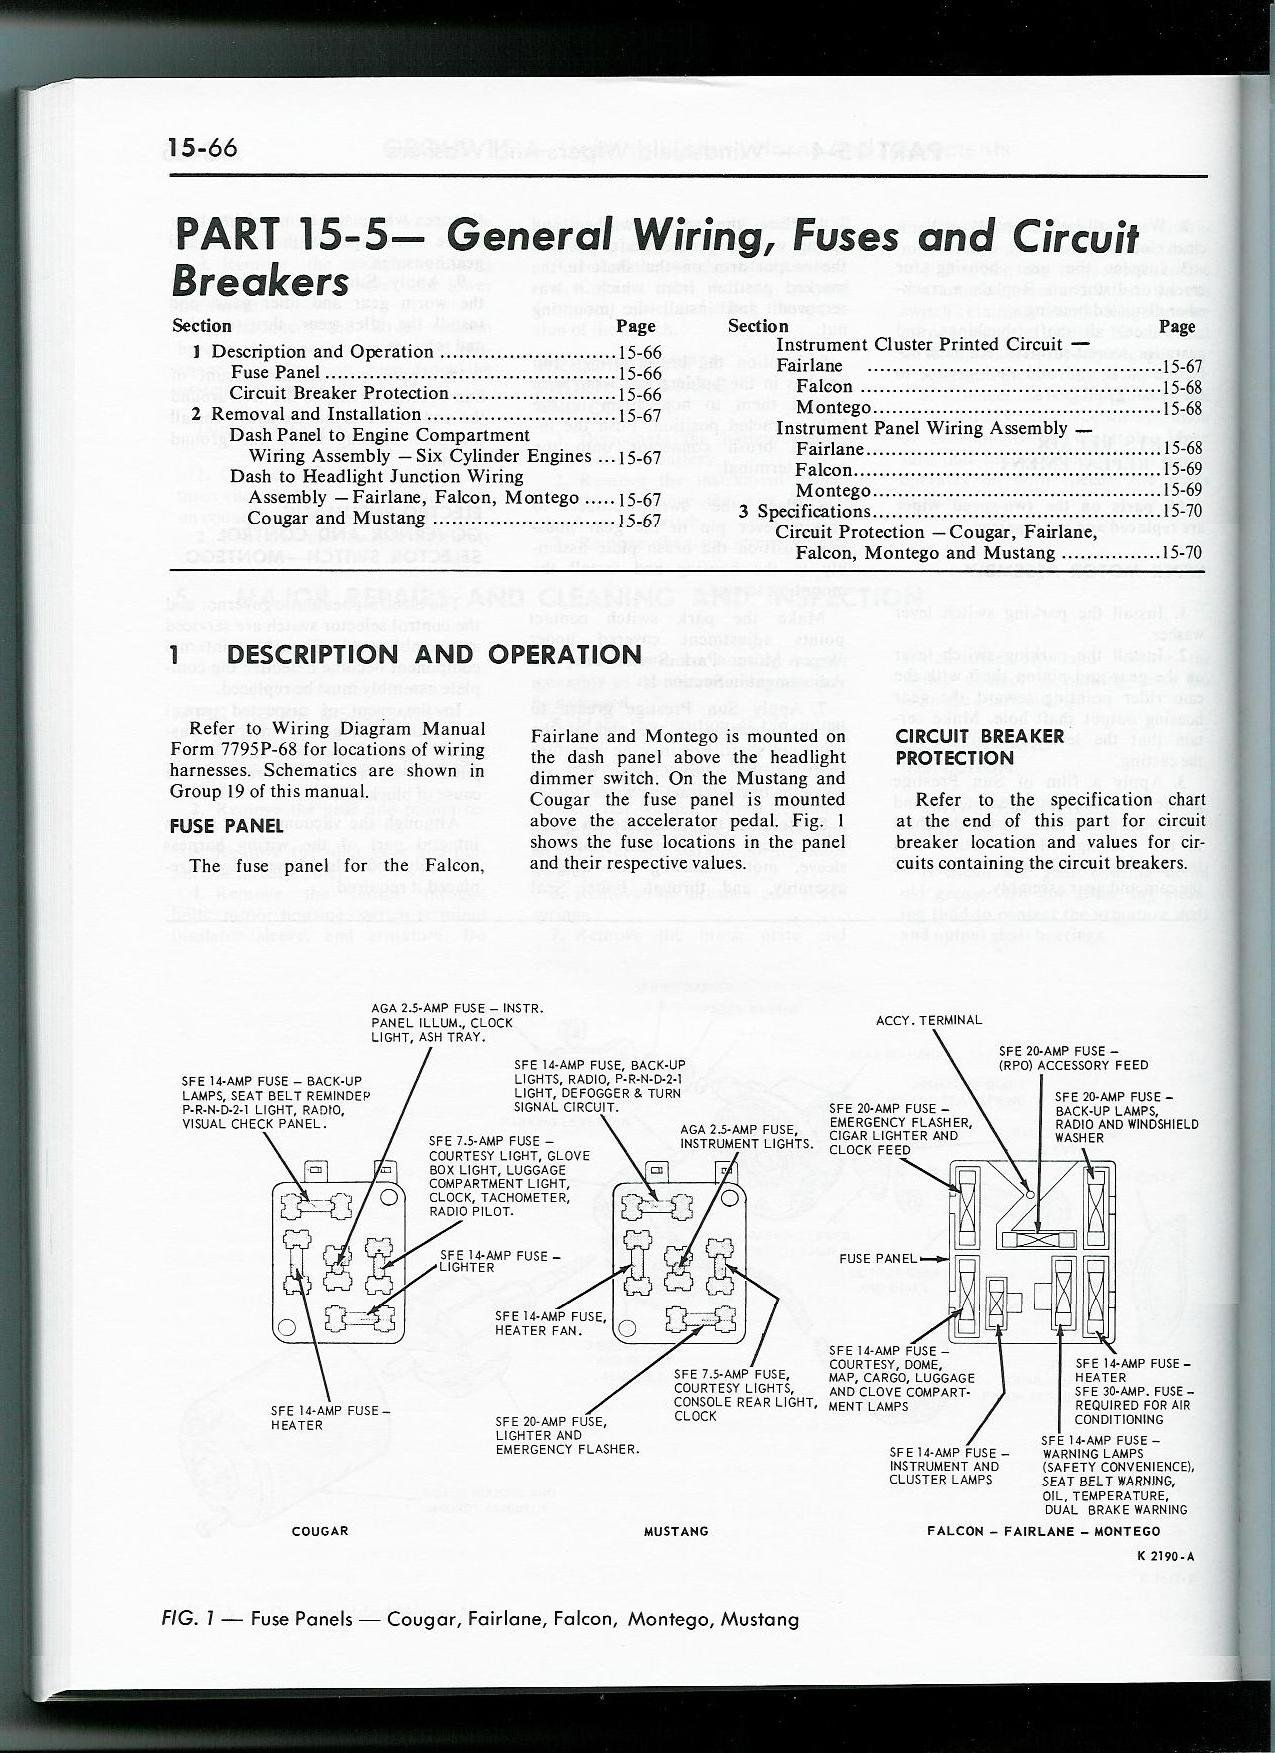 1965 Ford Mustang Fuse Box Internal Wiring Diagrams 1973 Dodge Dart Panel Diagram Forum Heater Controls